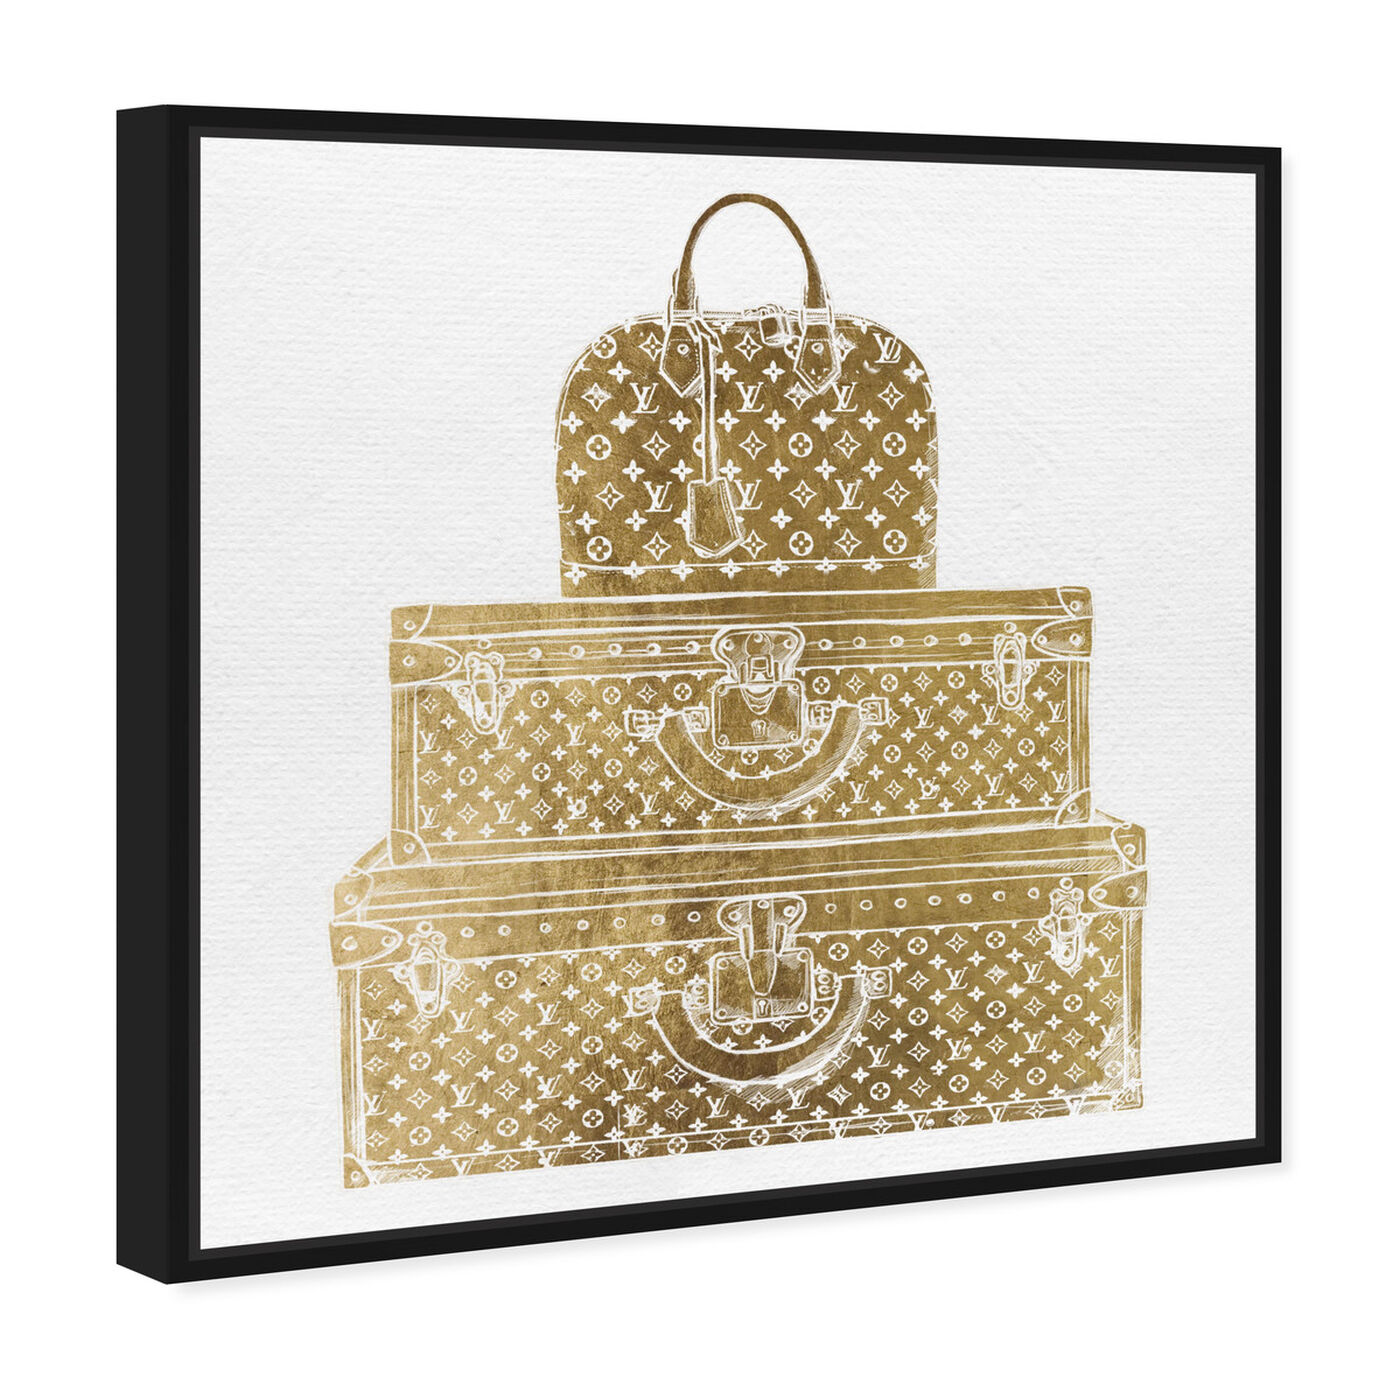 Angled view of Royal Bag and Luggage Gold featuring fashion and glam and travel essentials art.